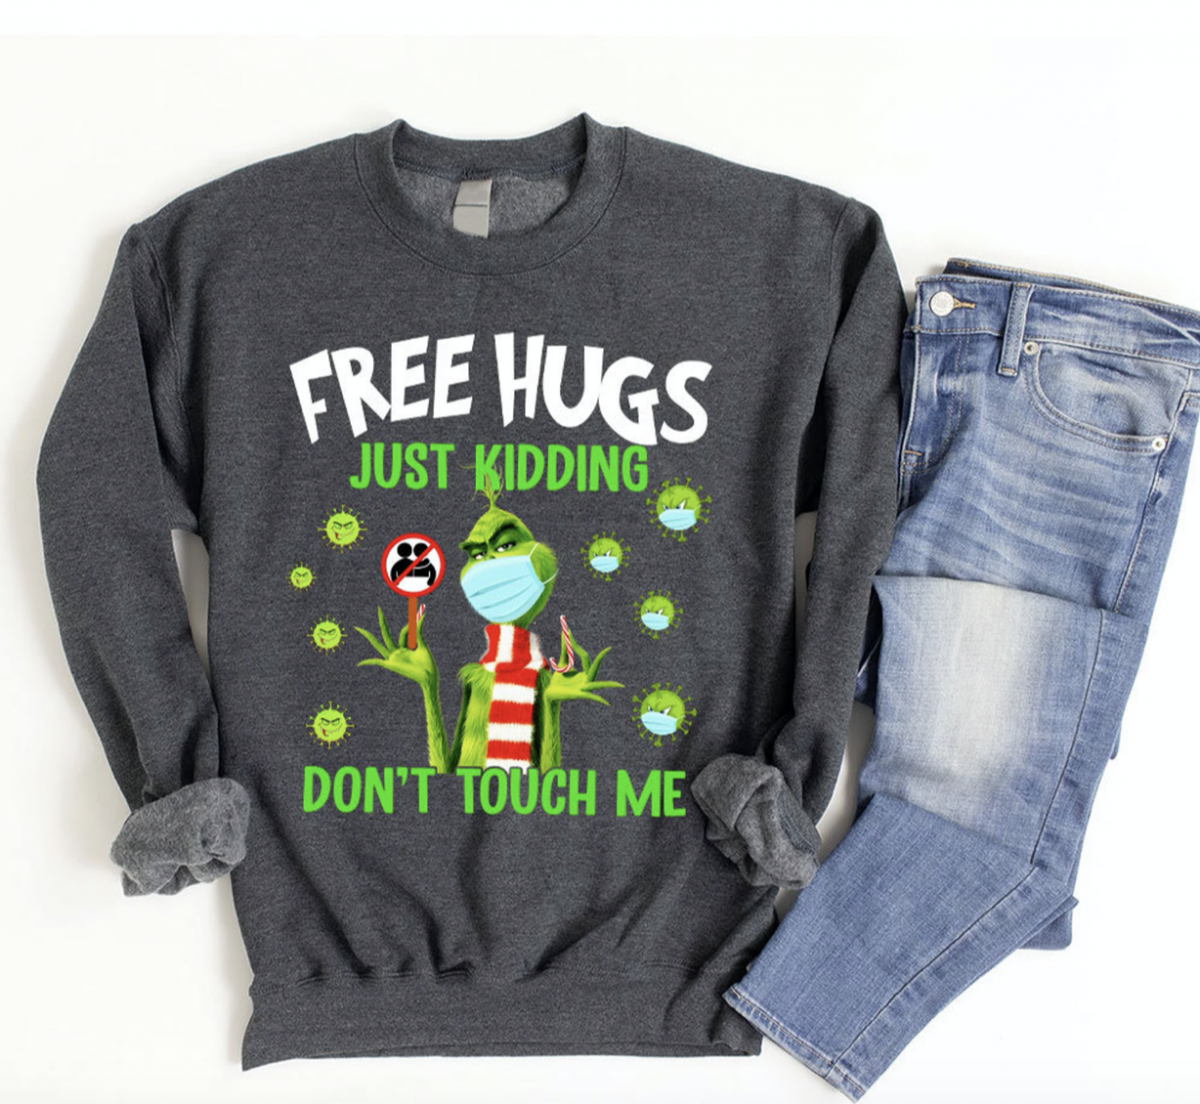 We've Found Some of The Ugliest Christmas Sweaters Just for You!